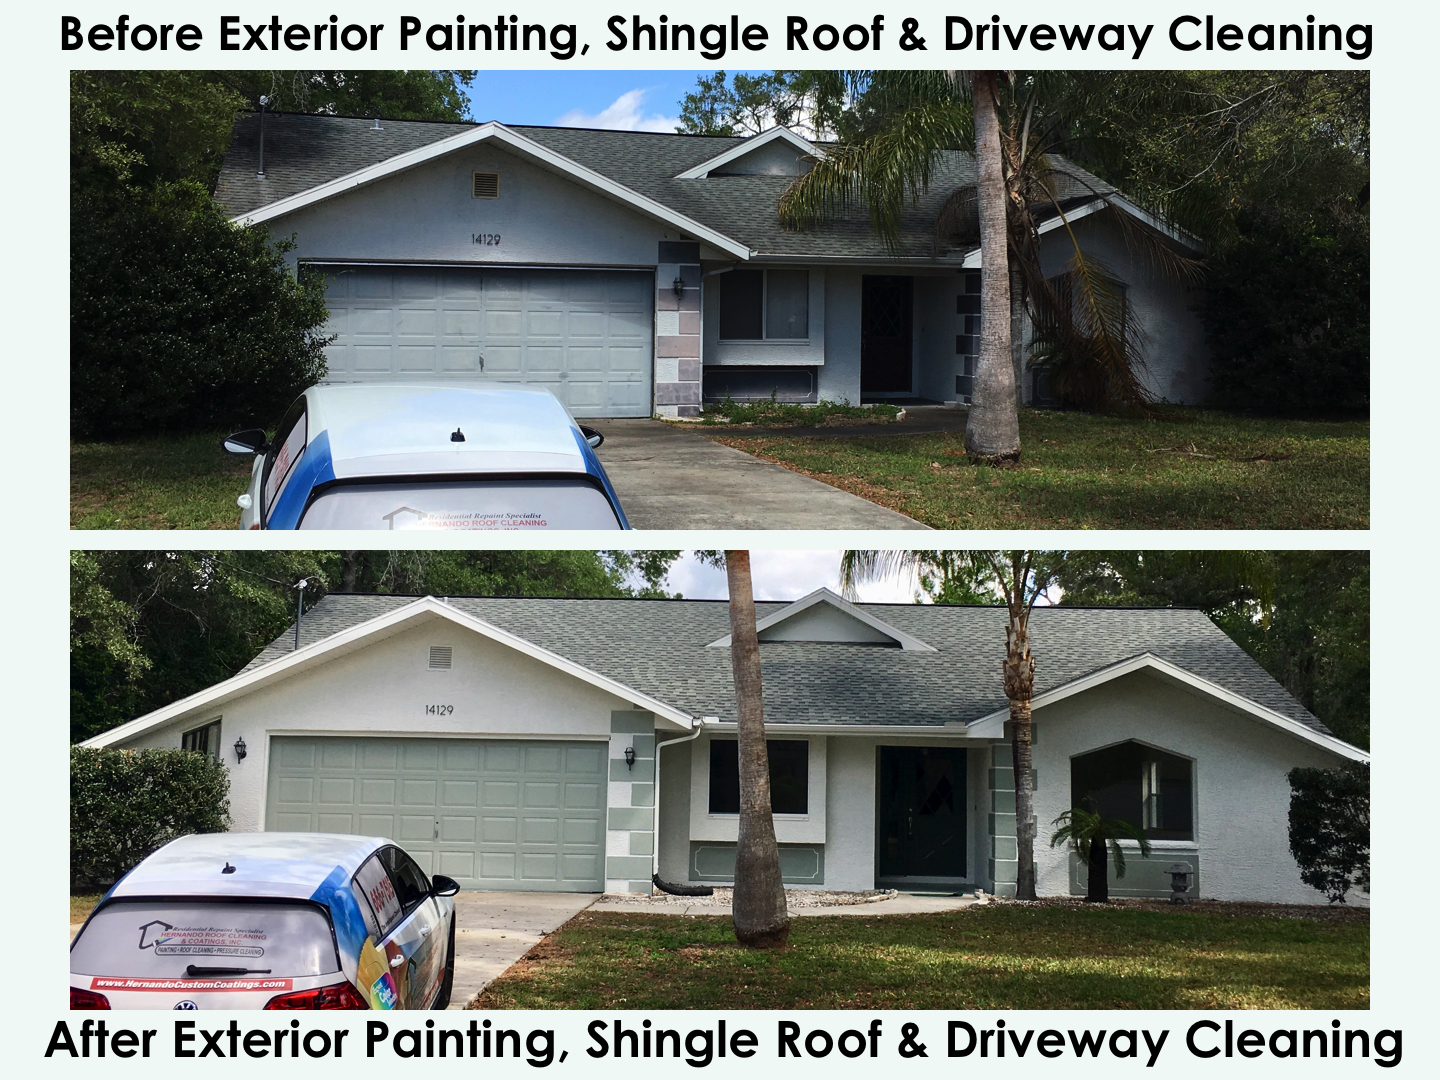 38 Before Amp After Exterior Painting Shingle Roof Cleaning